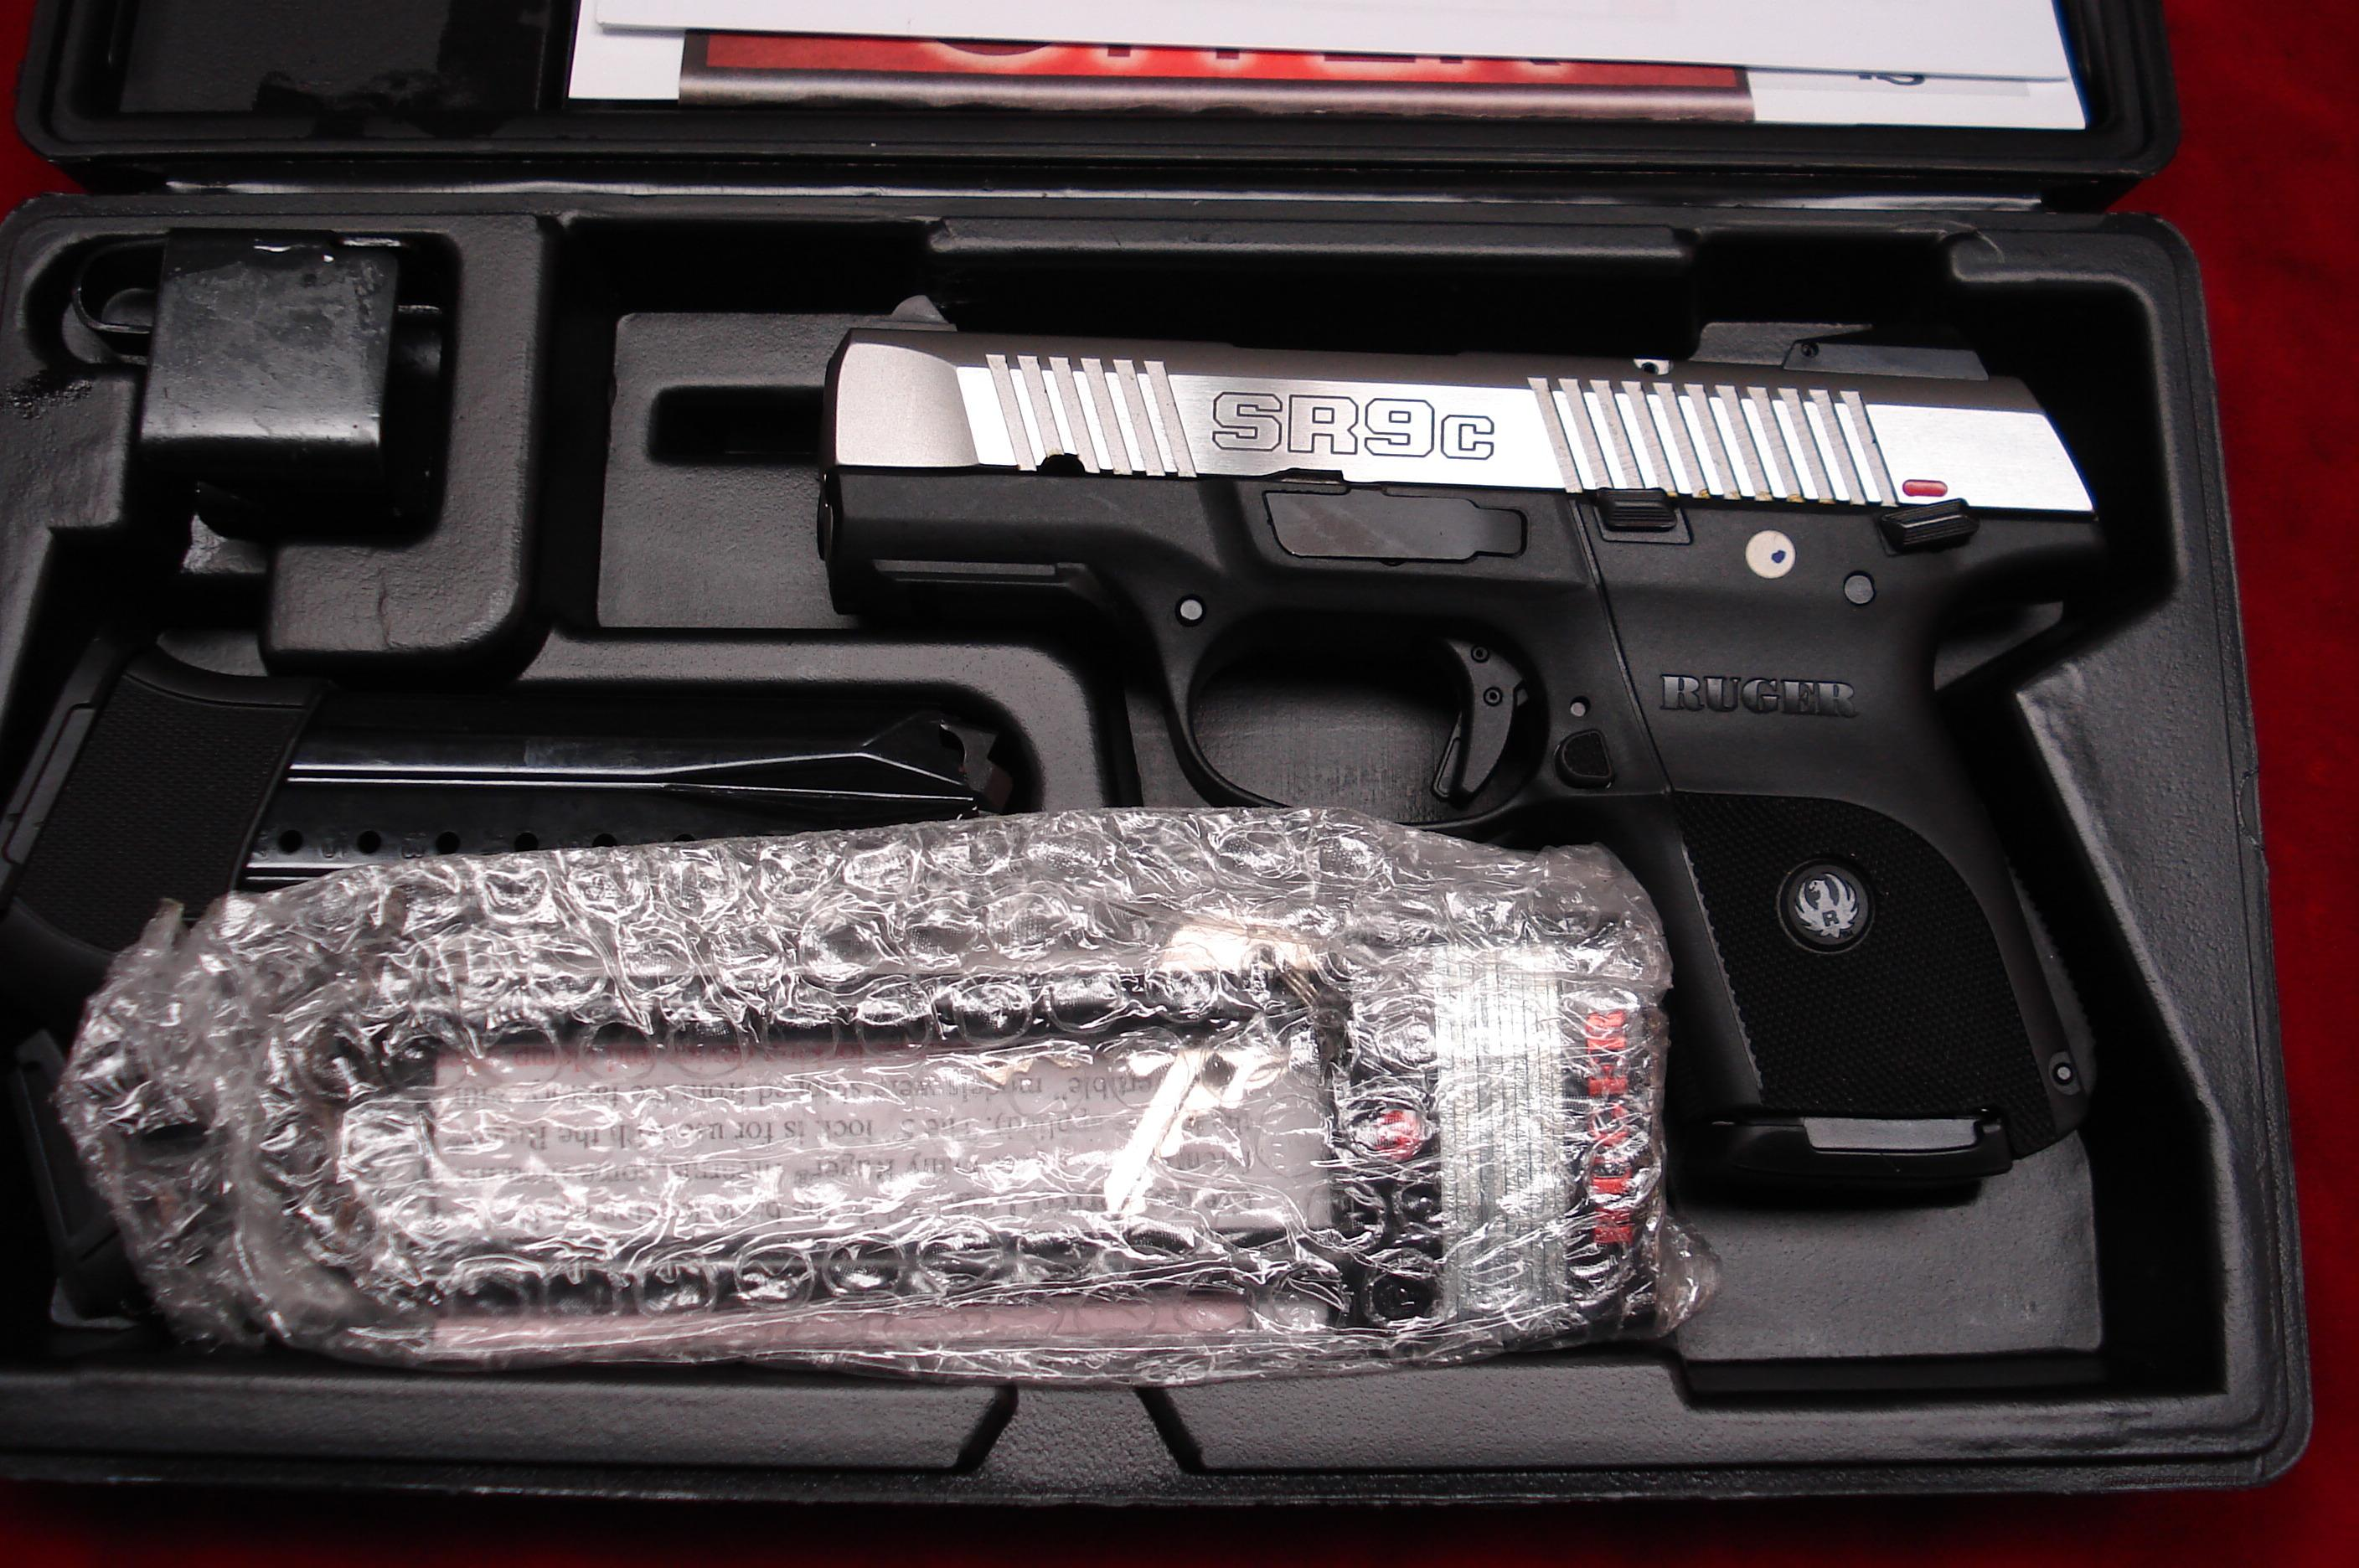 RUGER  SR9C (COMPACT) STAINLESS NEW (IN STOCK)! (KSR9C)  Guns > Pistols > Ruger Semi-Auto Pistols > SR9